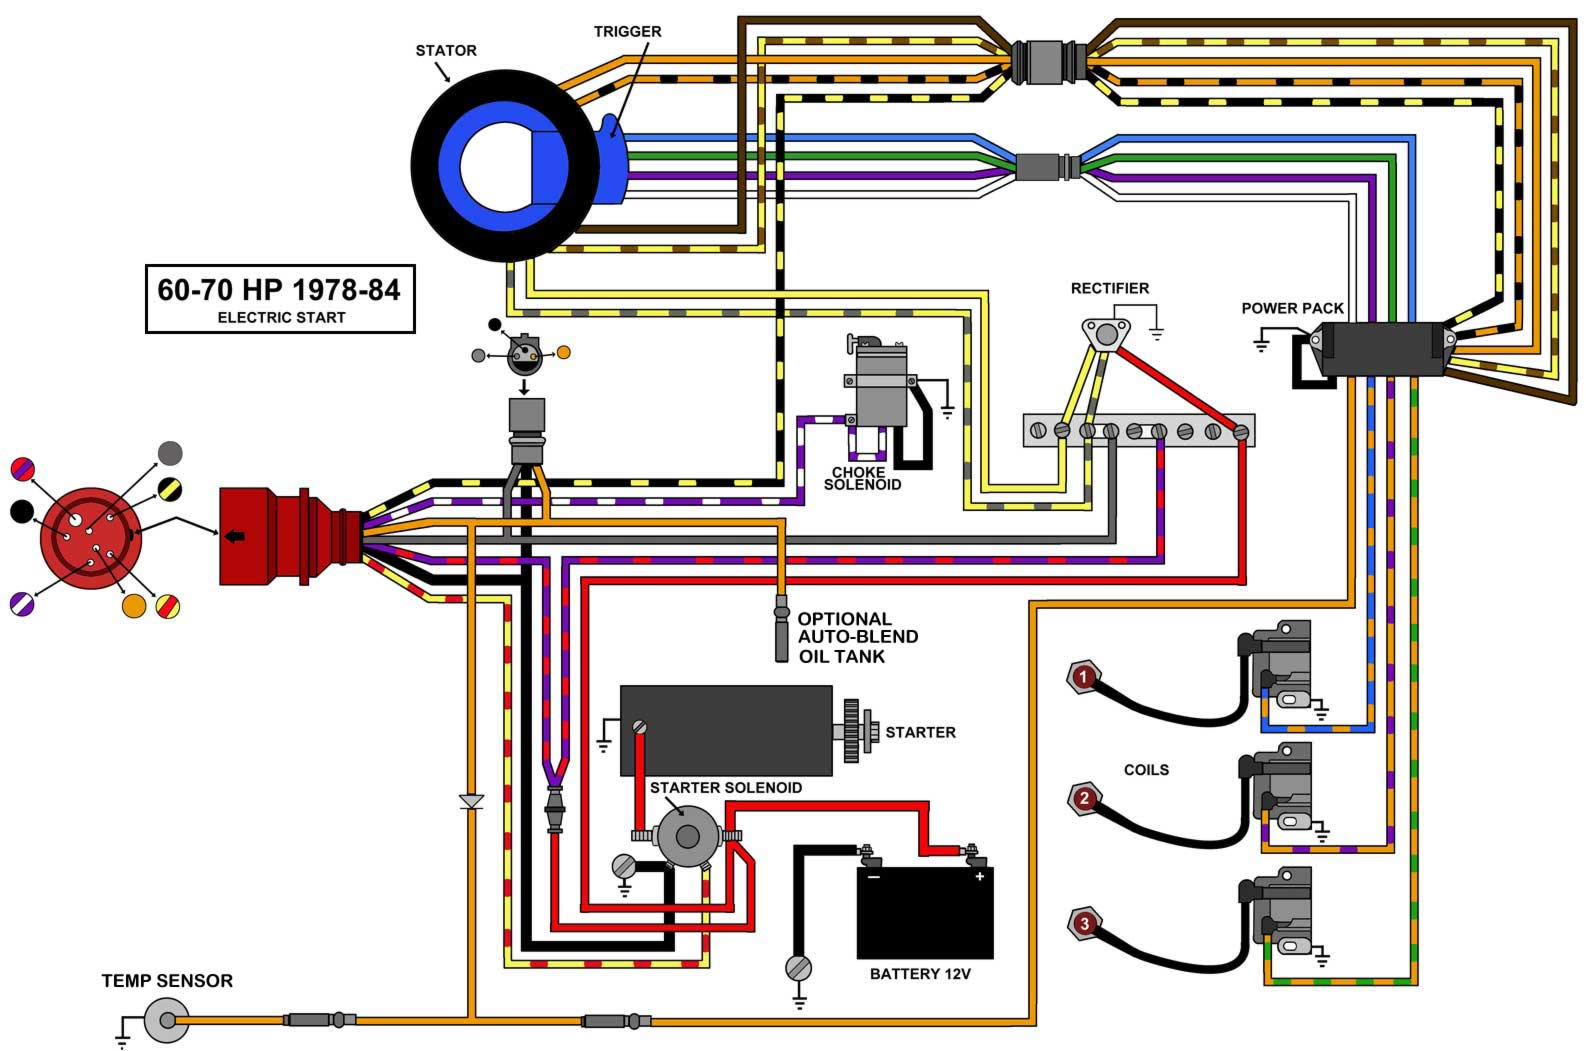 78 84_3 CYL_EL wiring tach from johnson controls page 1 iboats boating forums  at alyssarenee.co